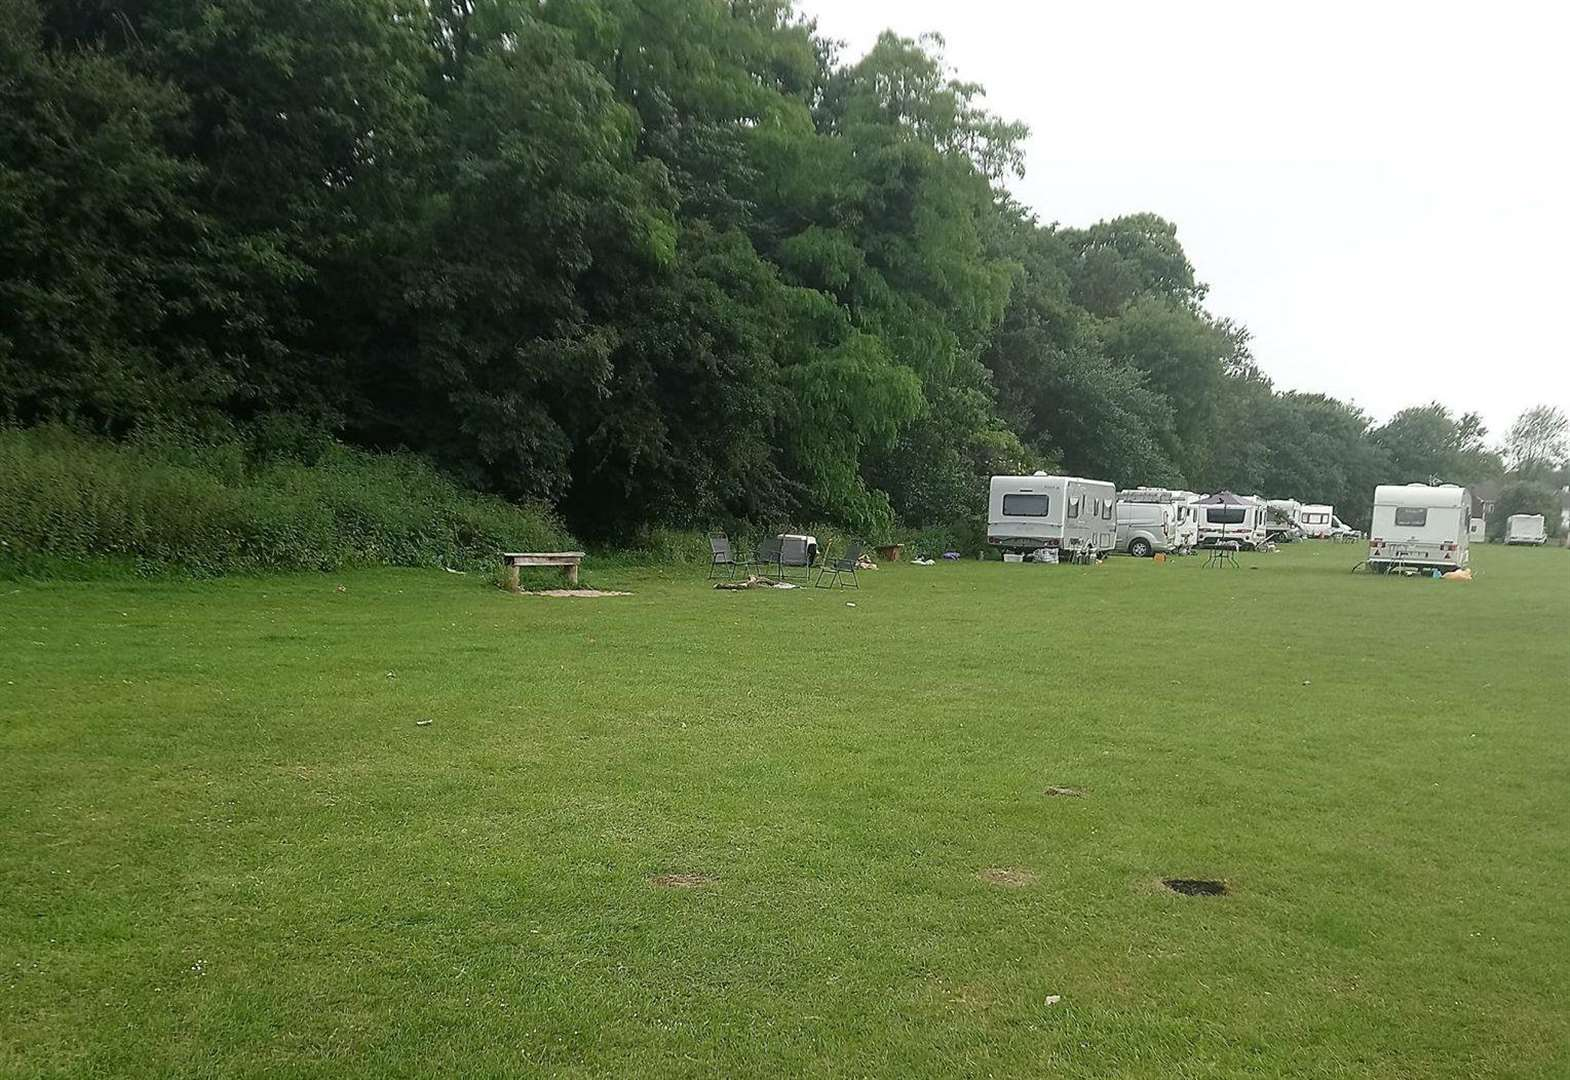 The threat of bailiffs leads to travellers departure